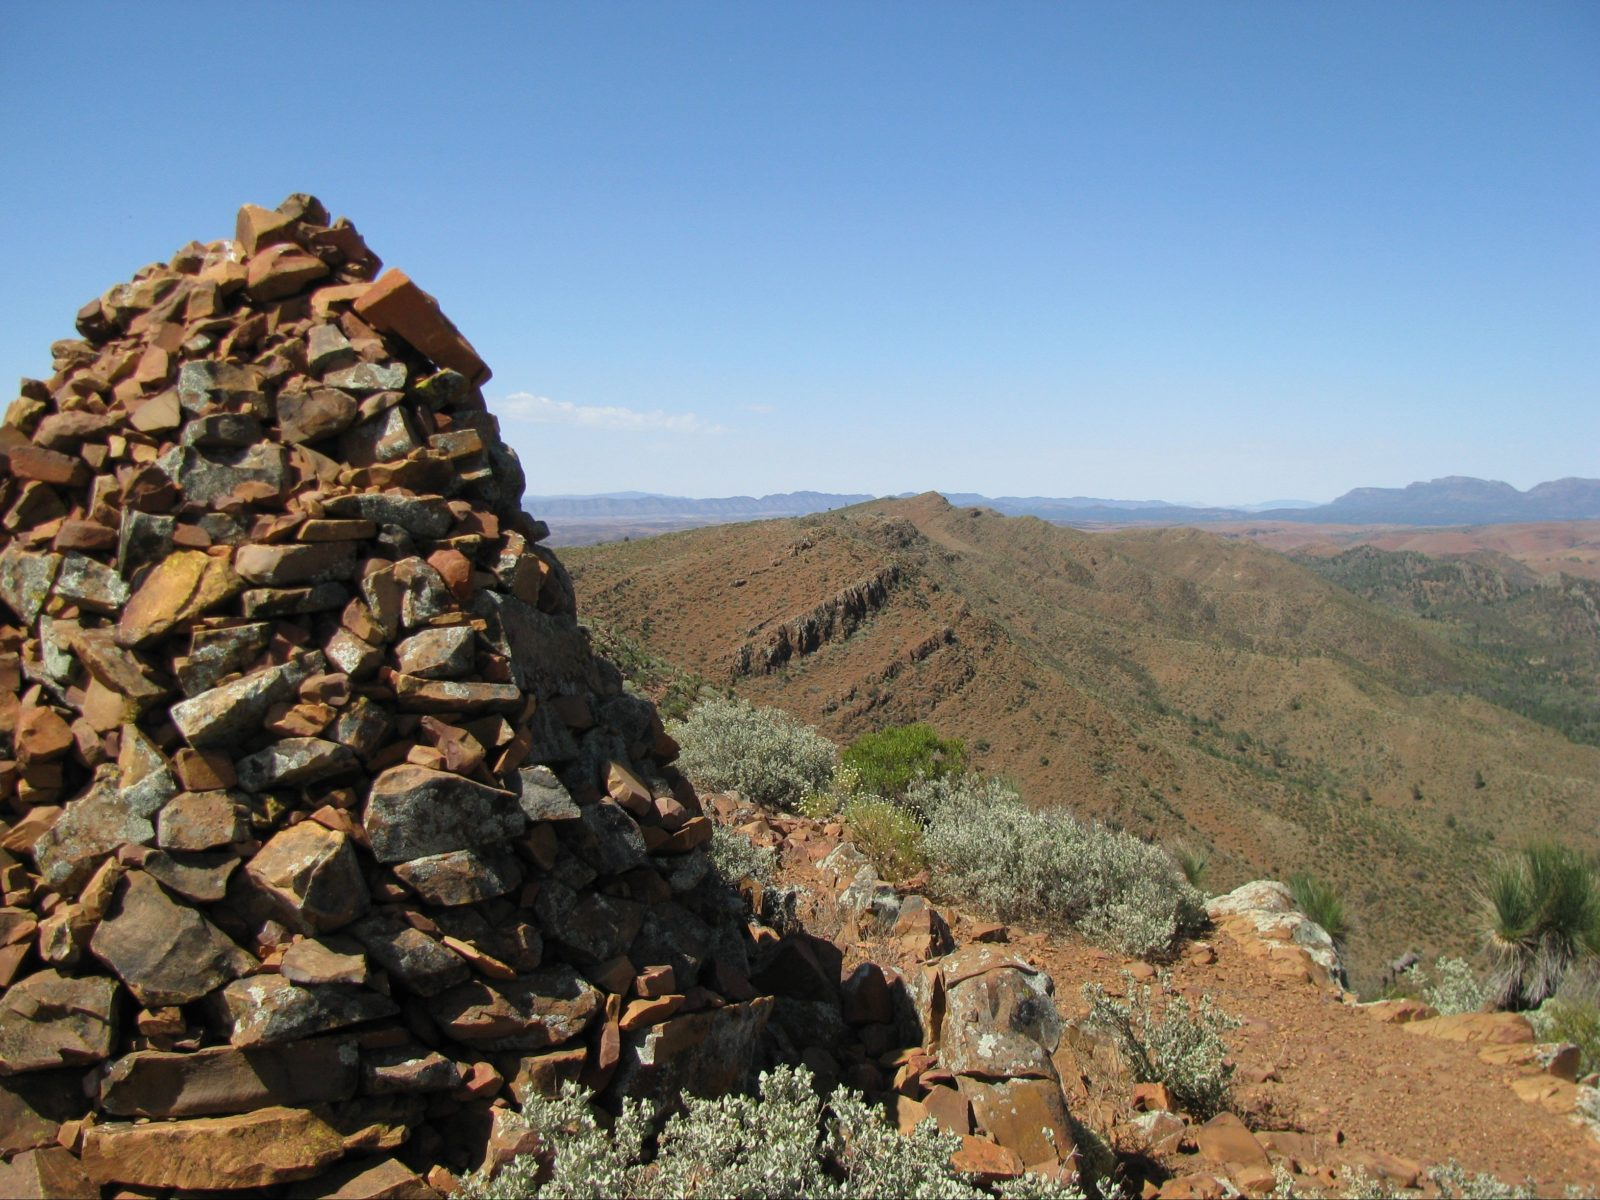 View of the historic rock cairn at the summit with breathtaking 360 degree views